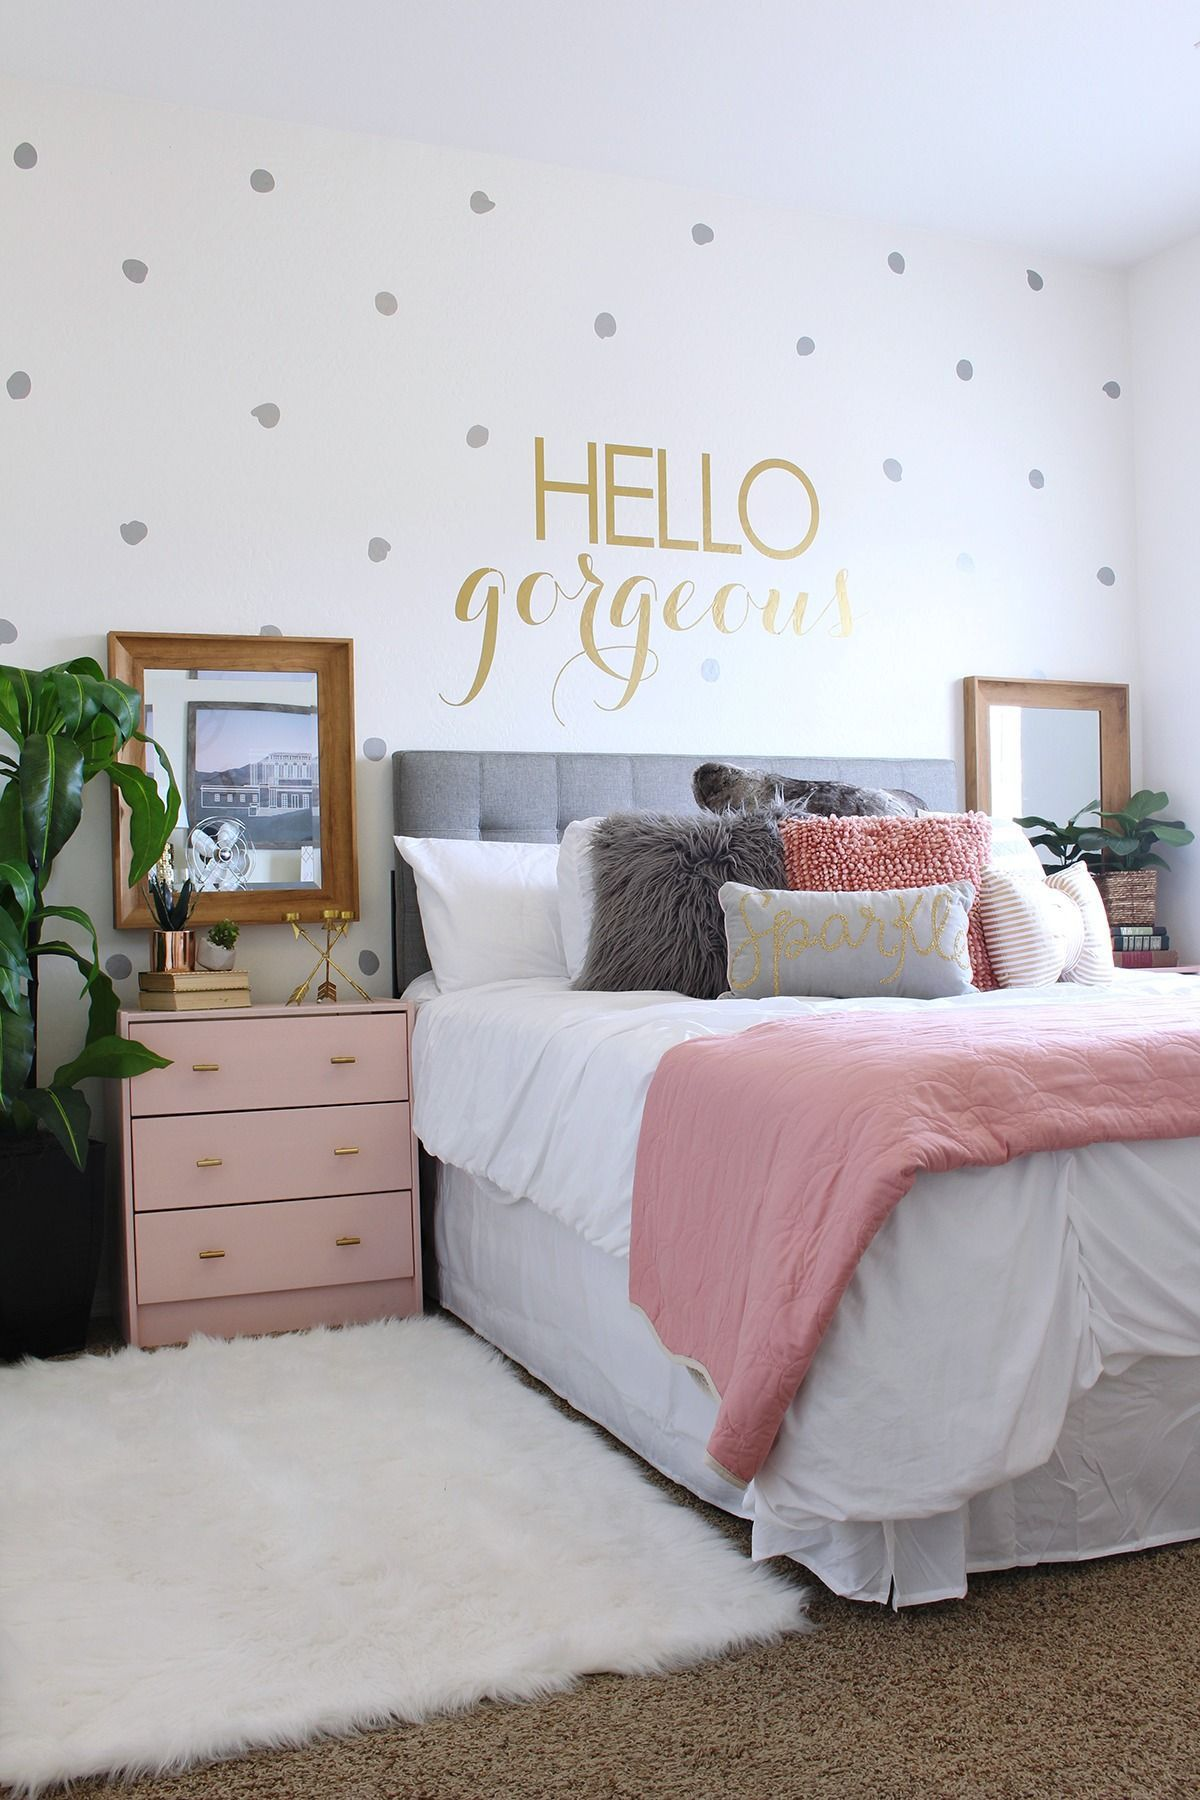 Best Of Pinterest Deco Chambre Fille (avec images)  Idees deco